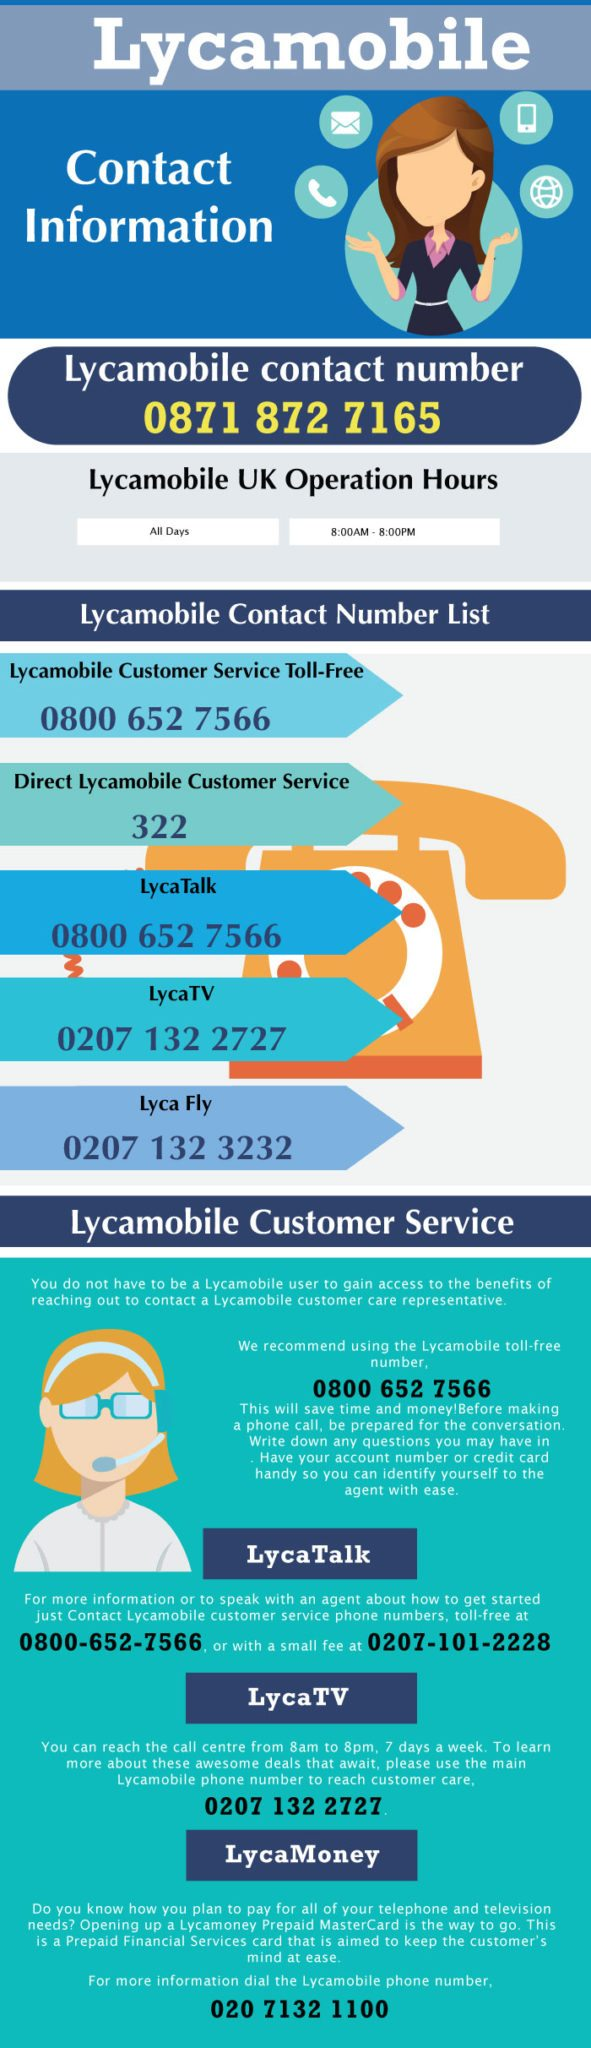 Lycamobile Customer Service Contact Number